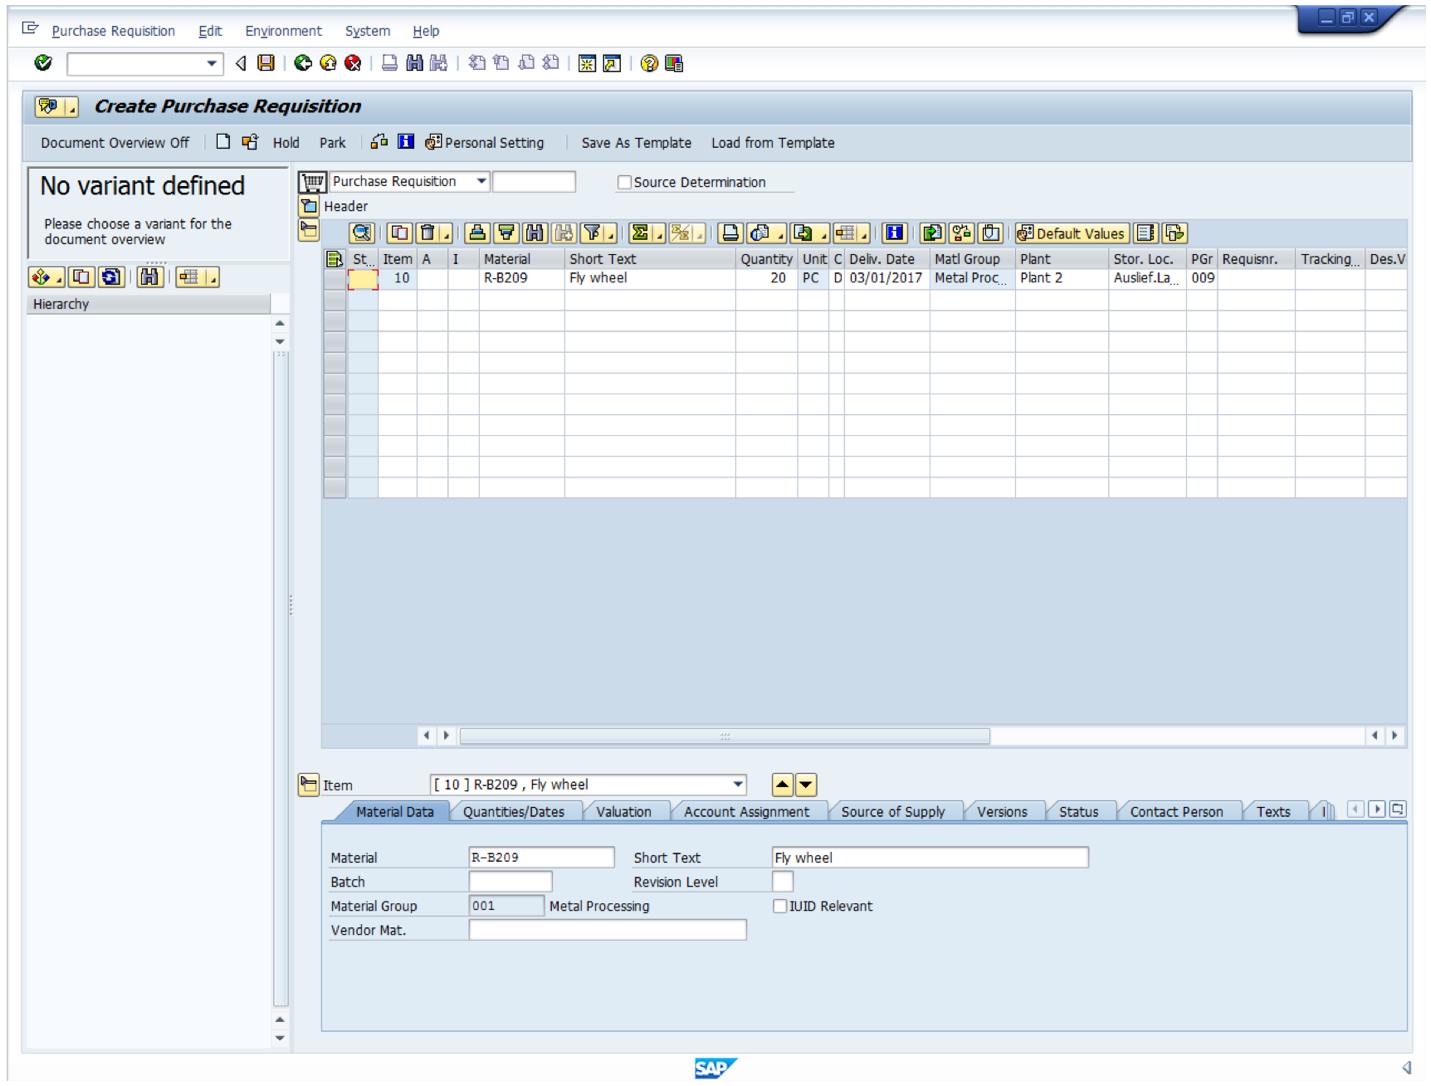 Use of the Material Master Record to Create SAP Purchase Requisition